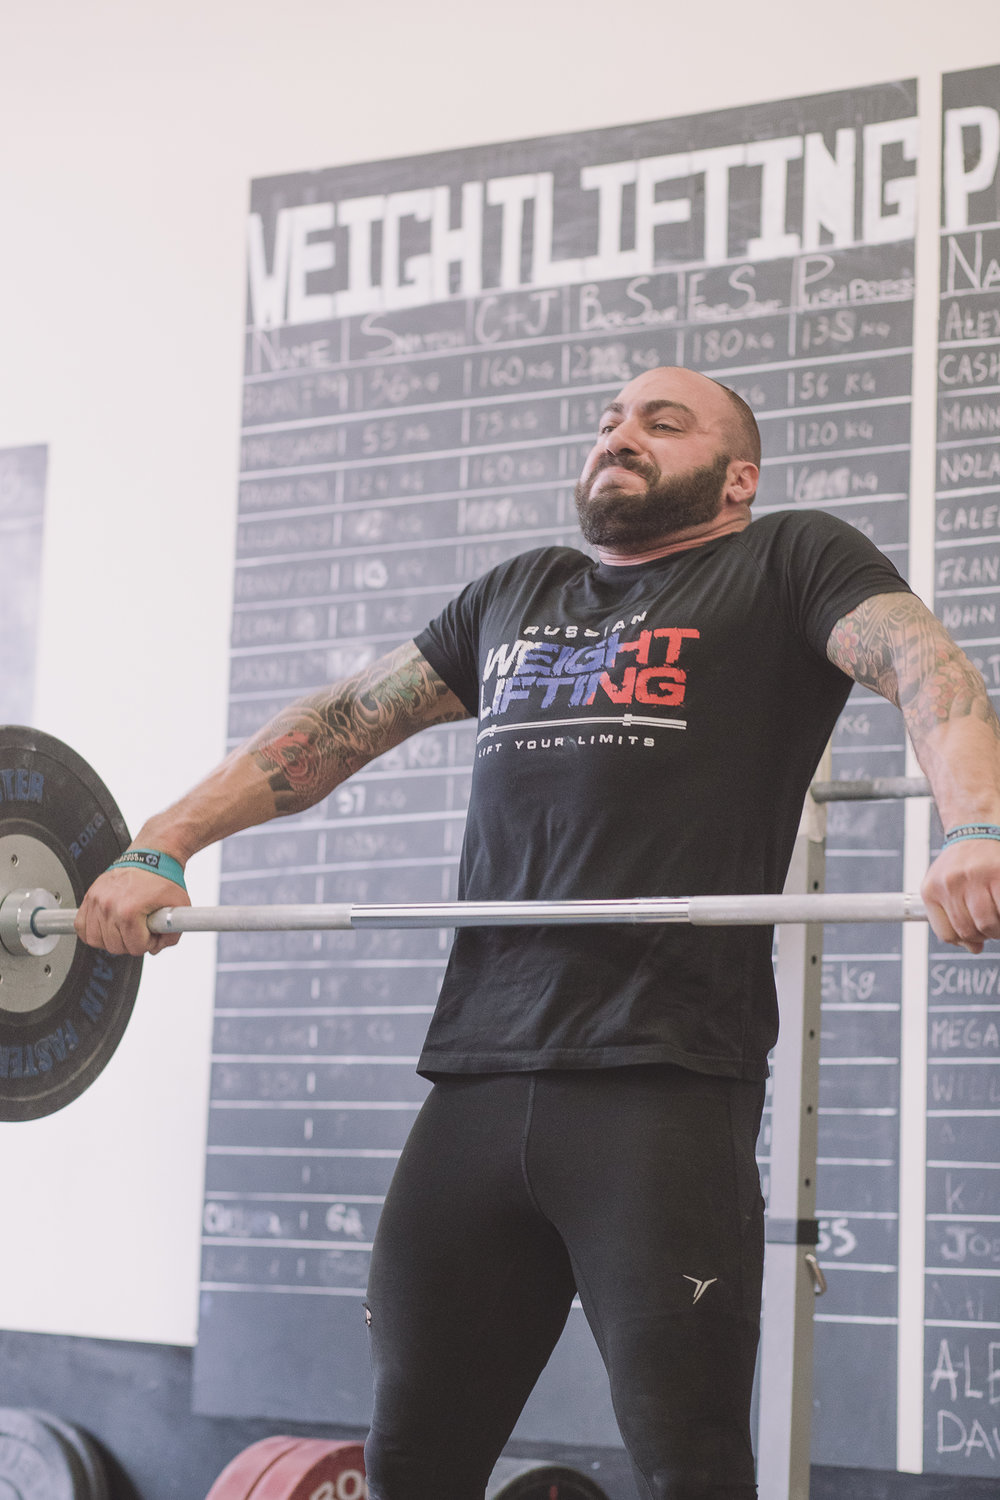 james-wright-weightlifting-coach.jpg